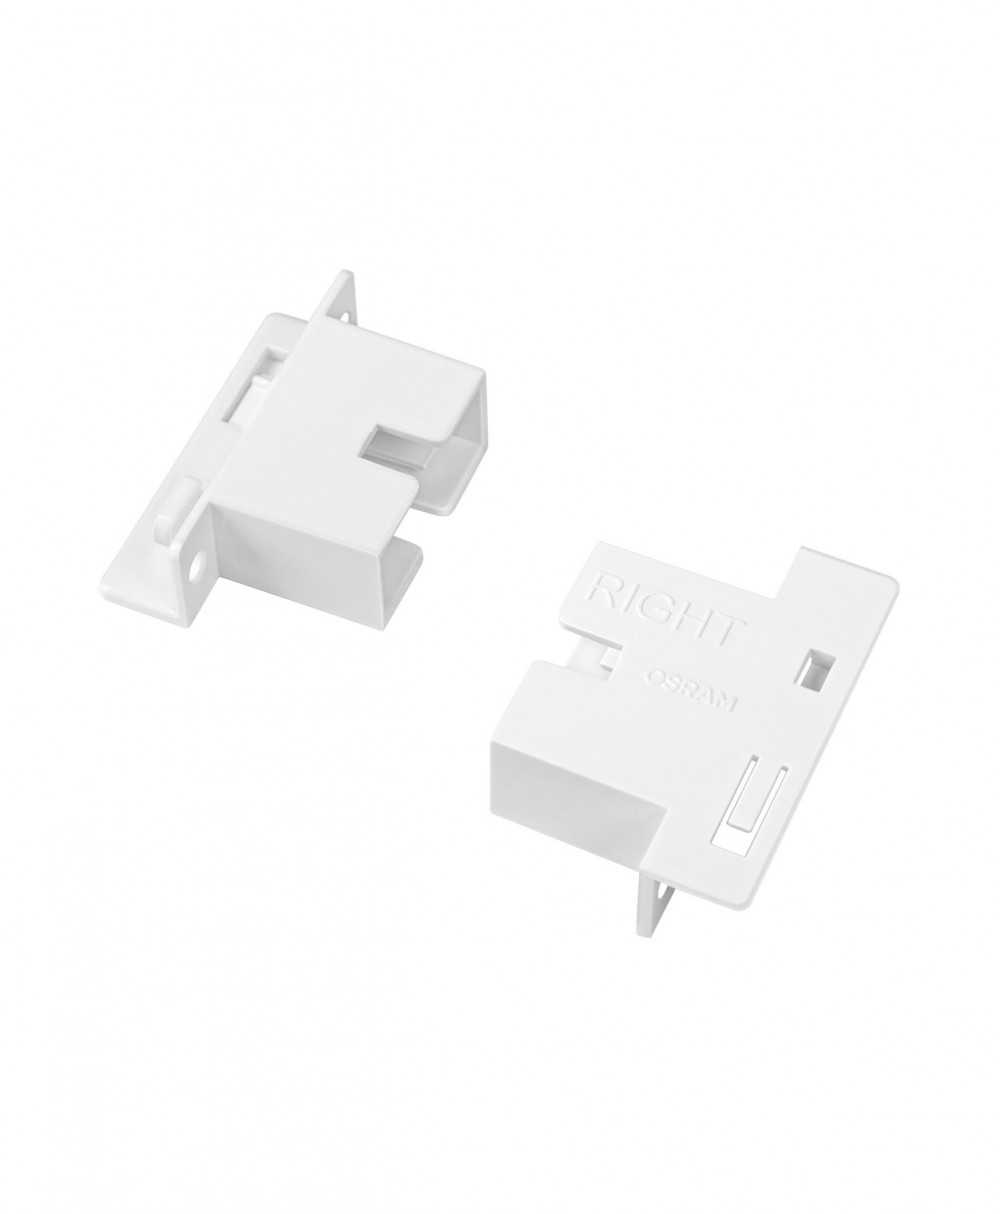 BX-DS-MP Mounting brackets